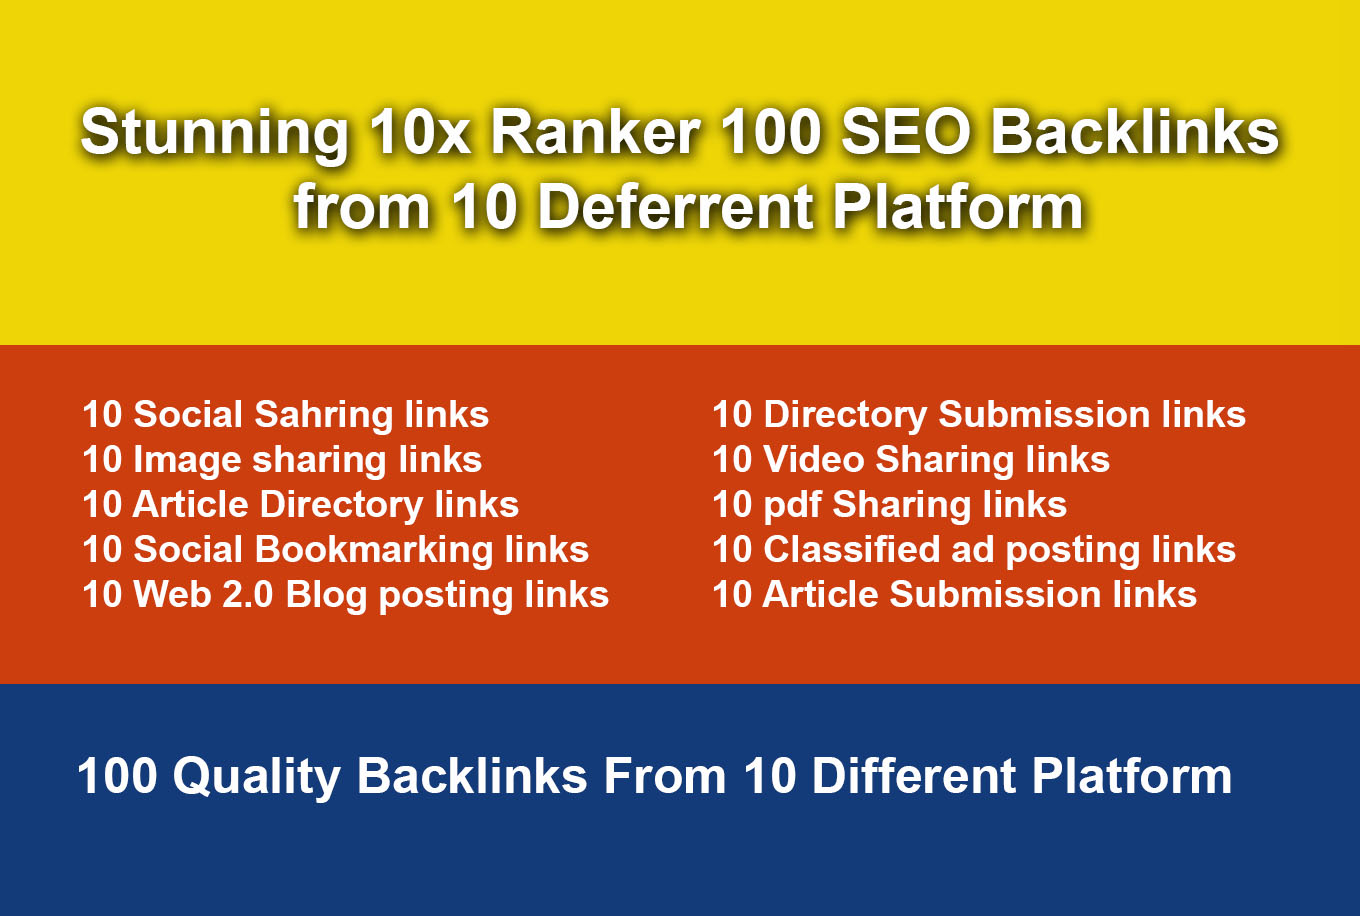 Stunning and Faster 10x Ranker 100 SEO Backlinks from 10 Different Platforms